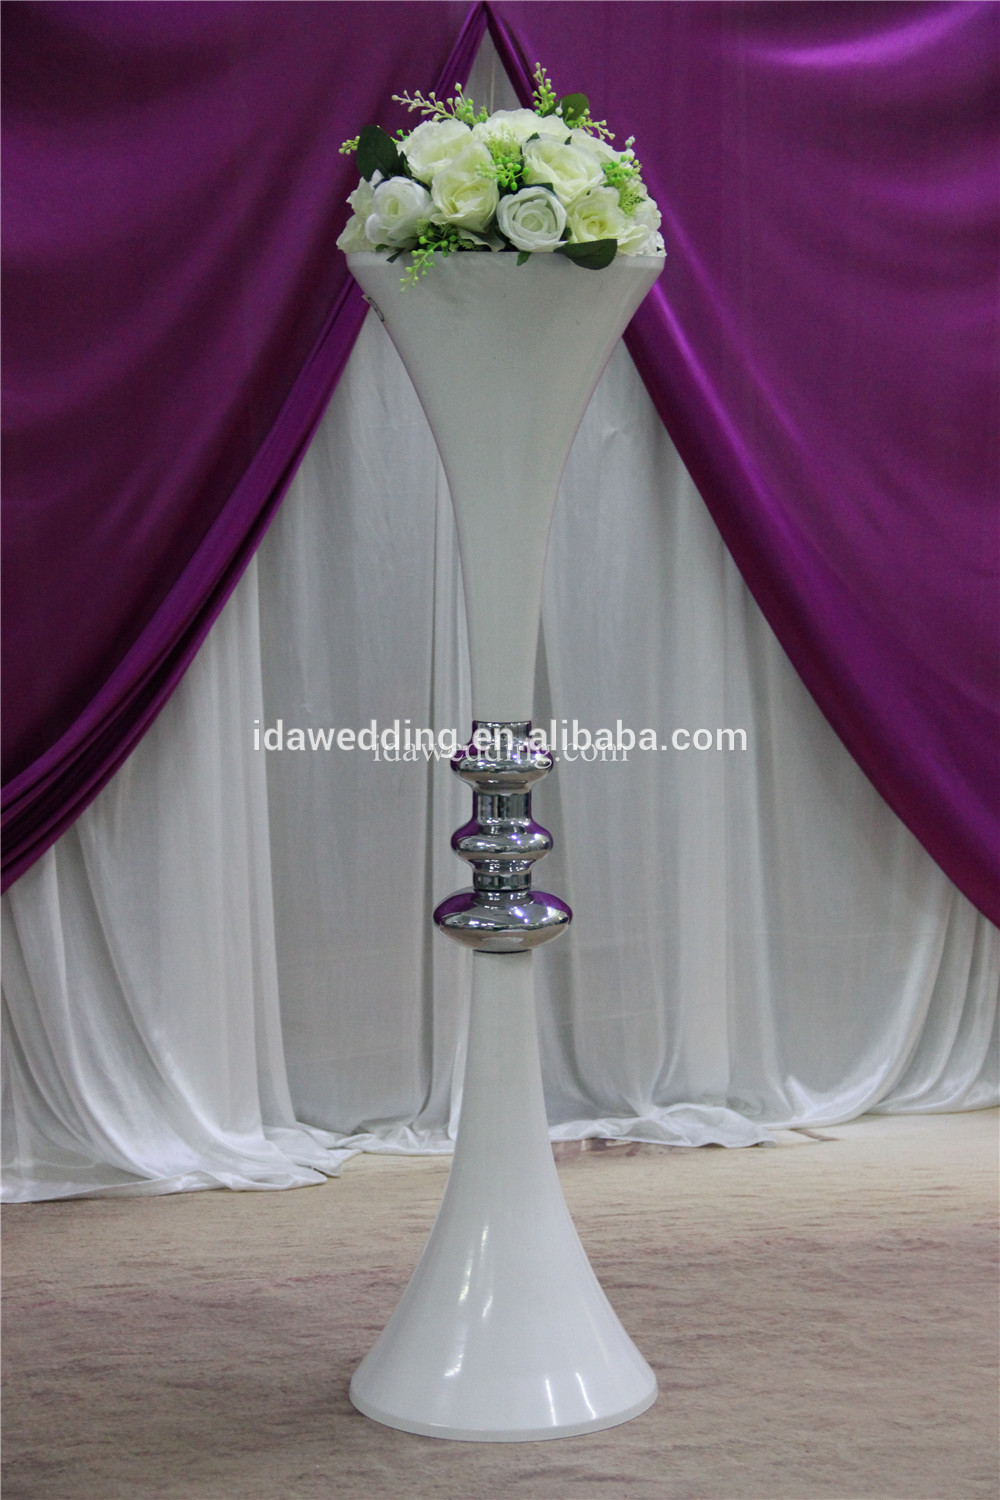 trumpet flower vase of flower vases for weddings cool find inspiration in nature for your pertaining to decorative flower vase wedding table vase tall weddingvase weddings cm glass with flow